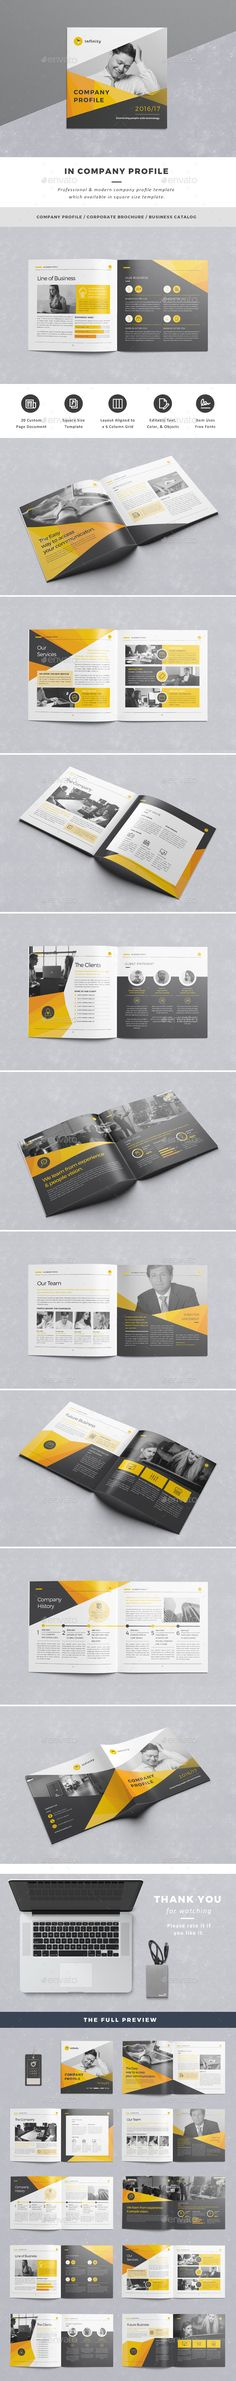 #Company Profile - Corporate Brochures.Download here: http://graphicriver.net/item/in-company-profile/16254032?ref=arroganttype